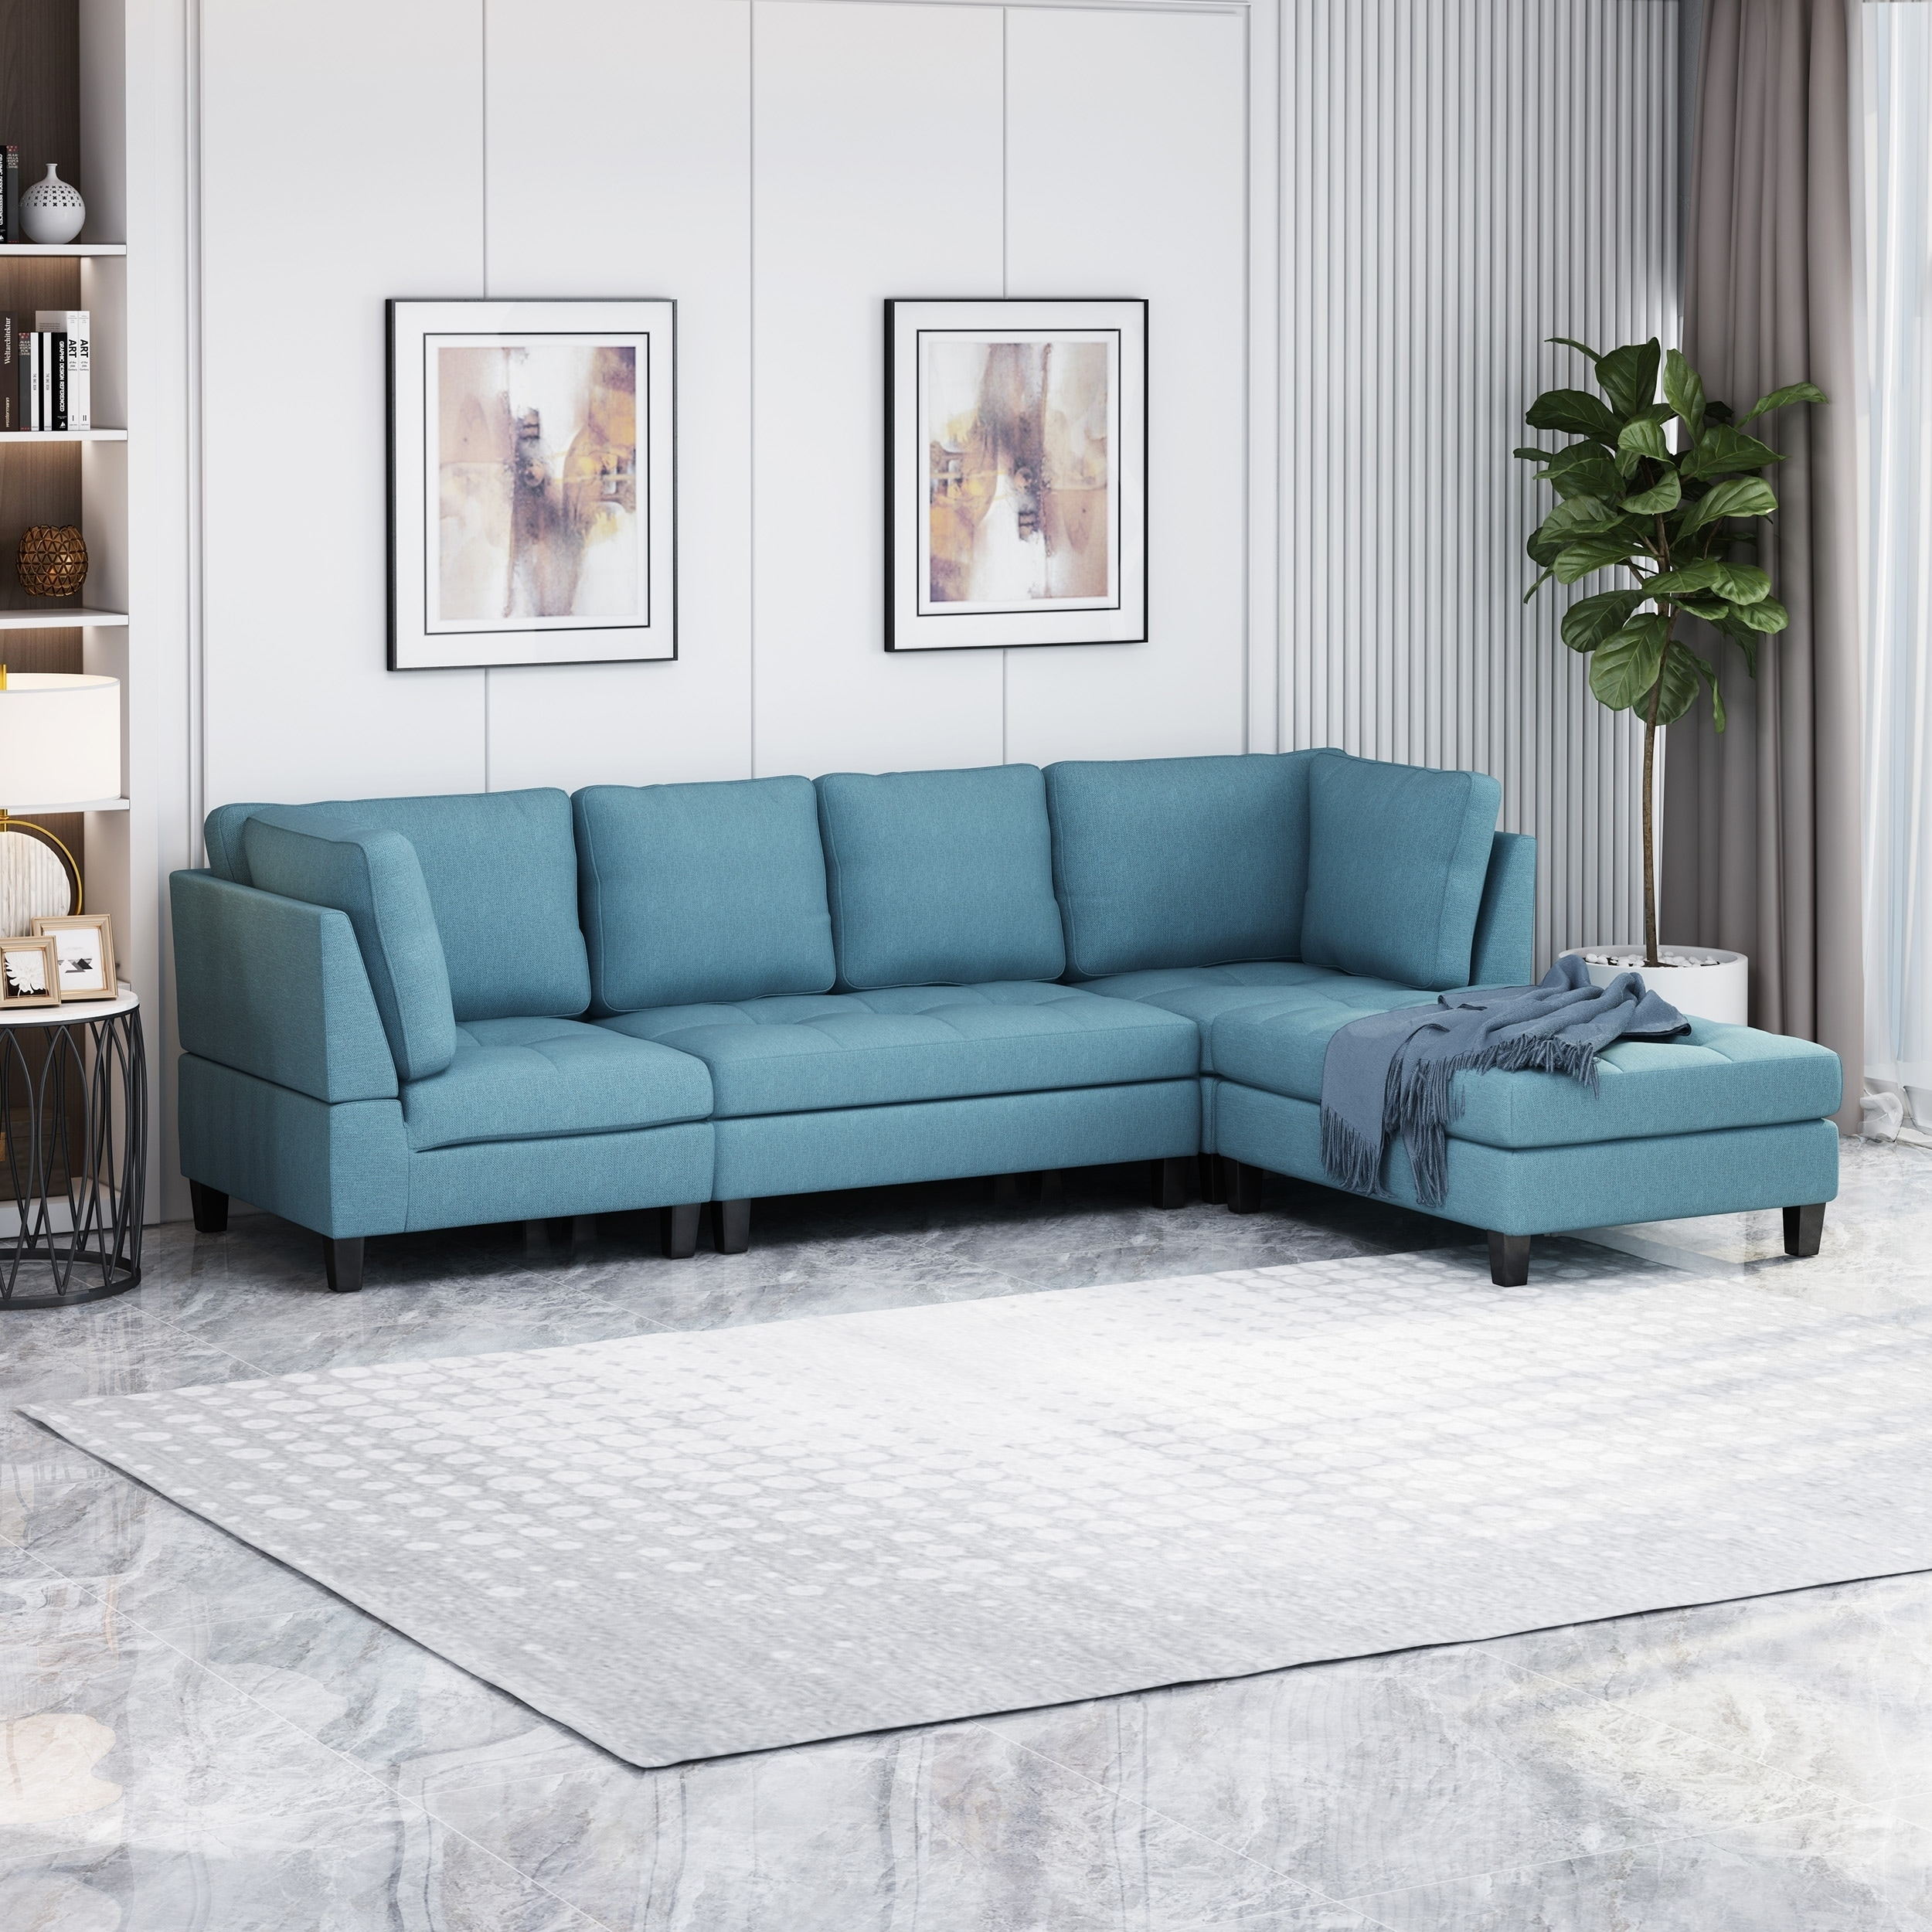 Fabric Sectional Sofa With Ottoman